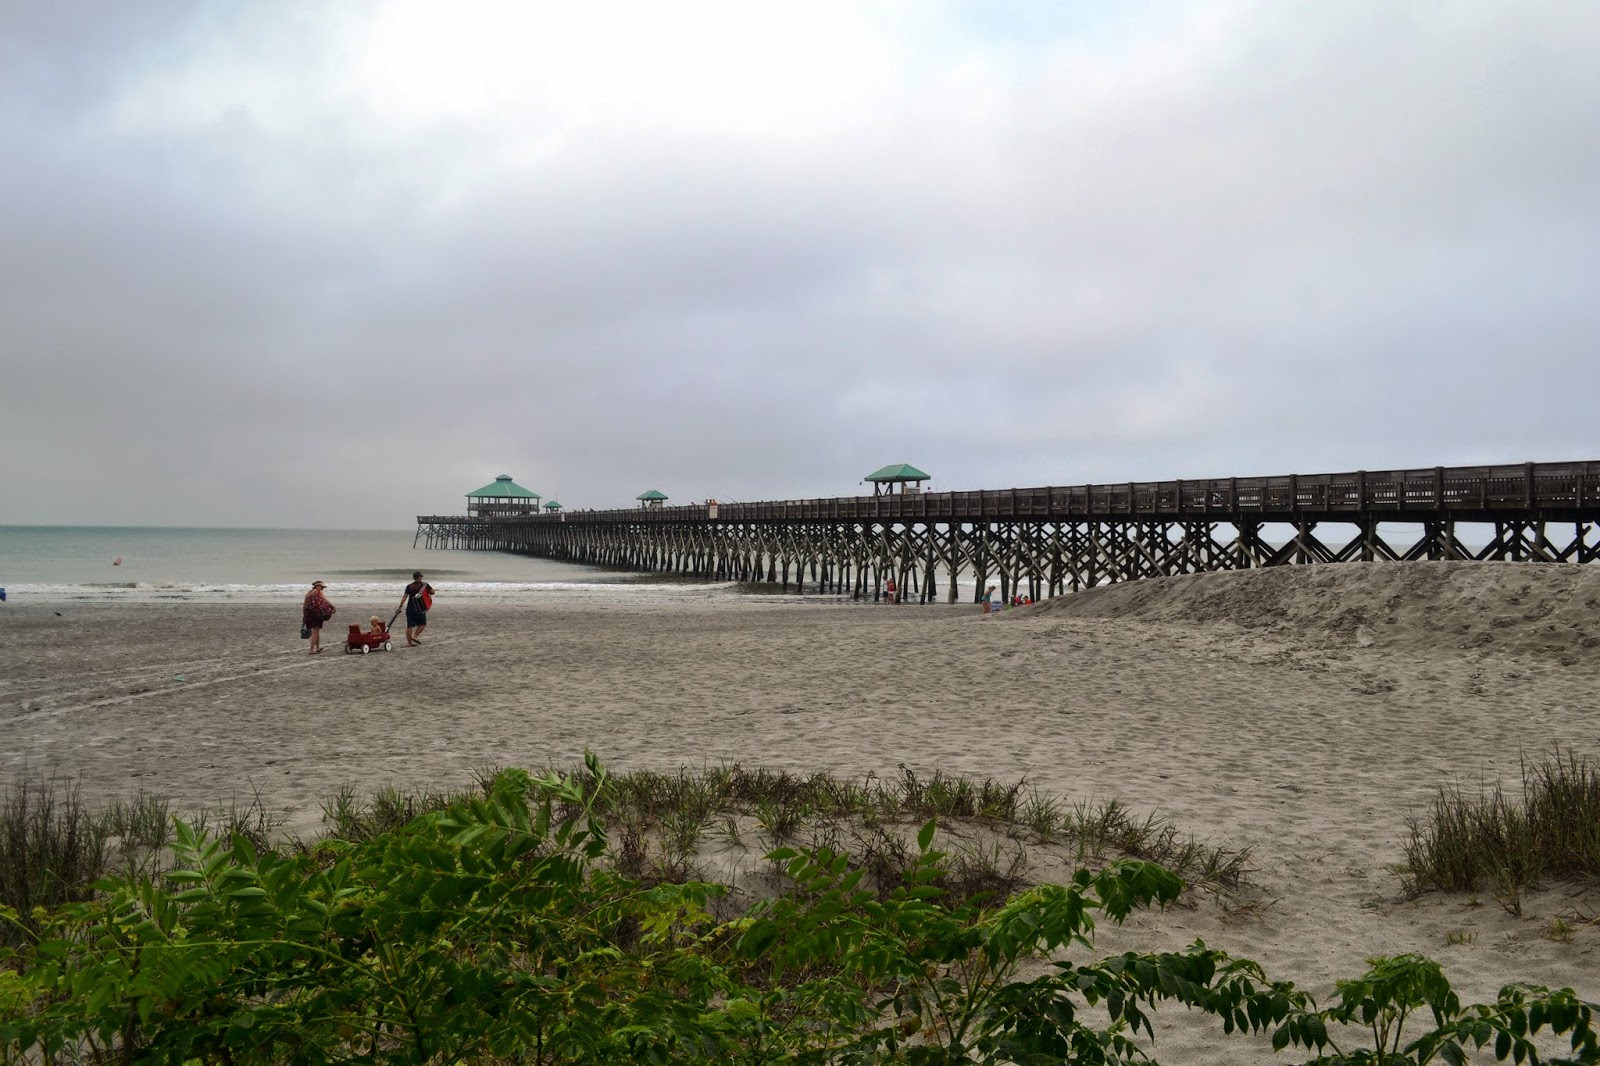 folly beach men Looking for the ideal folly beach sc men's clothing to express yourself come check out our giant selection & find yours today.